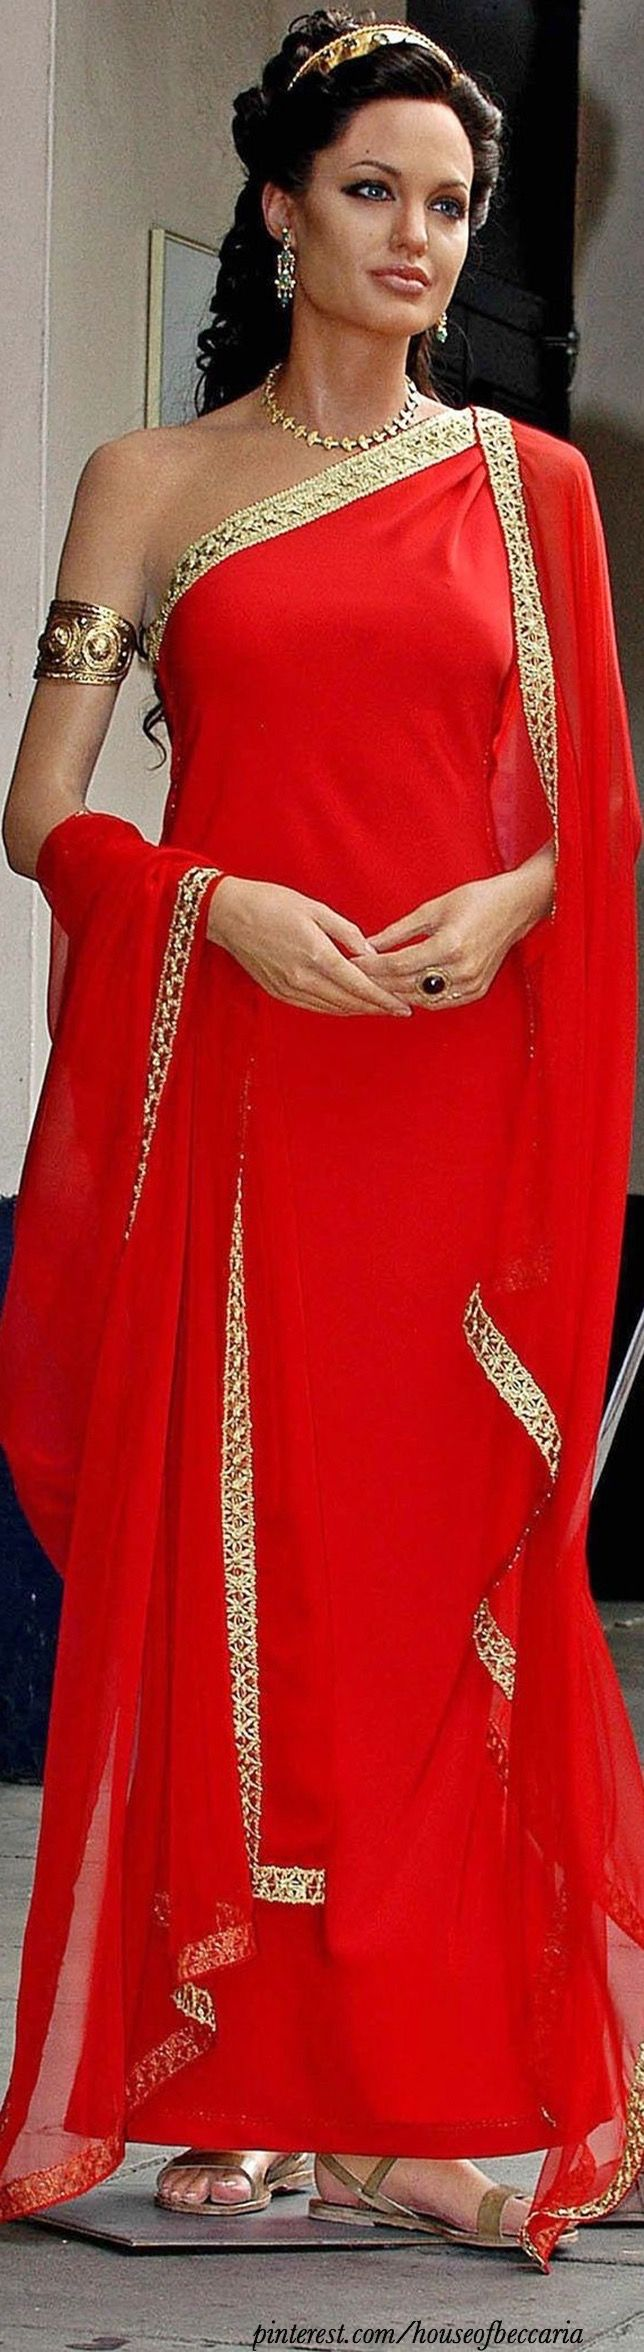 ~Angelina Jolie in Alexander, Red Grecian Dress | The House of Beccaria